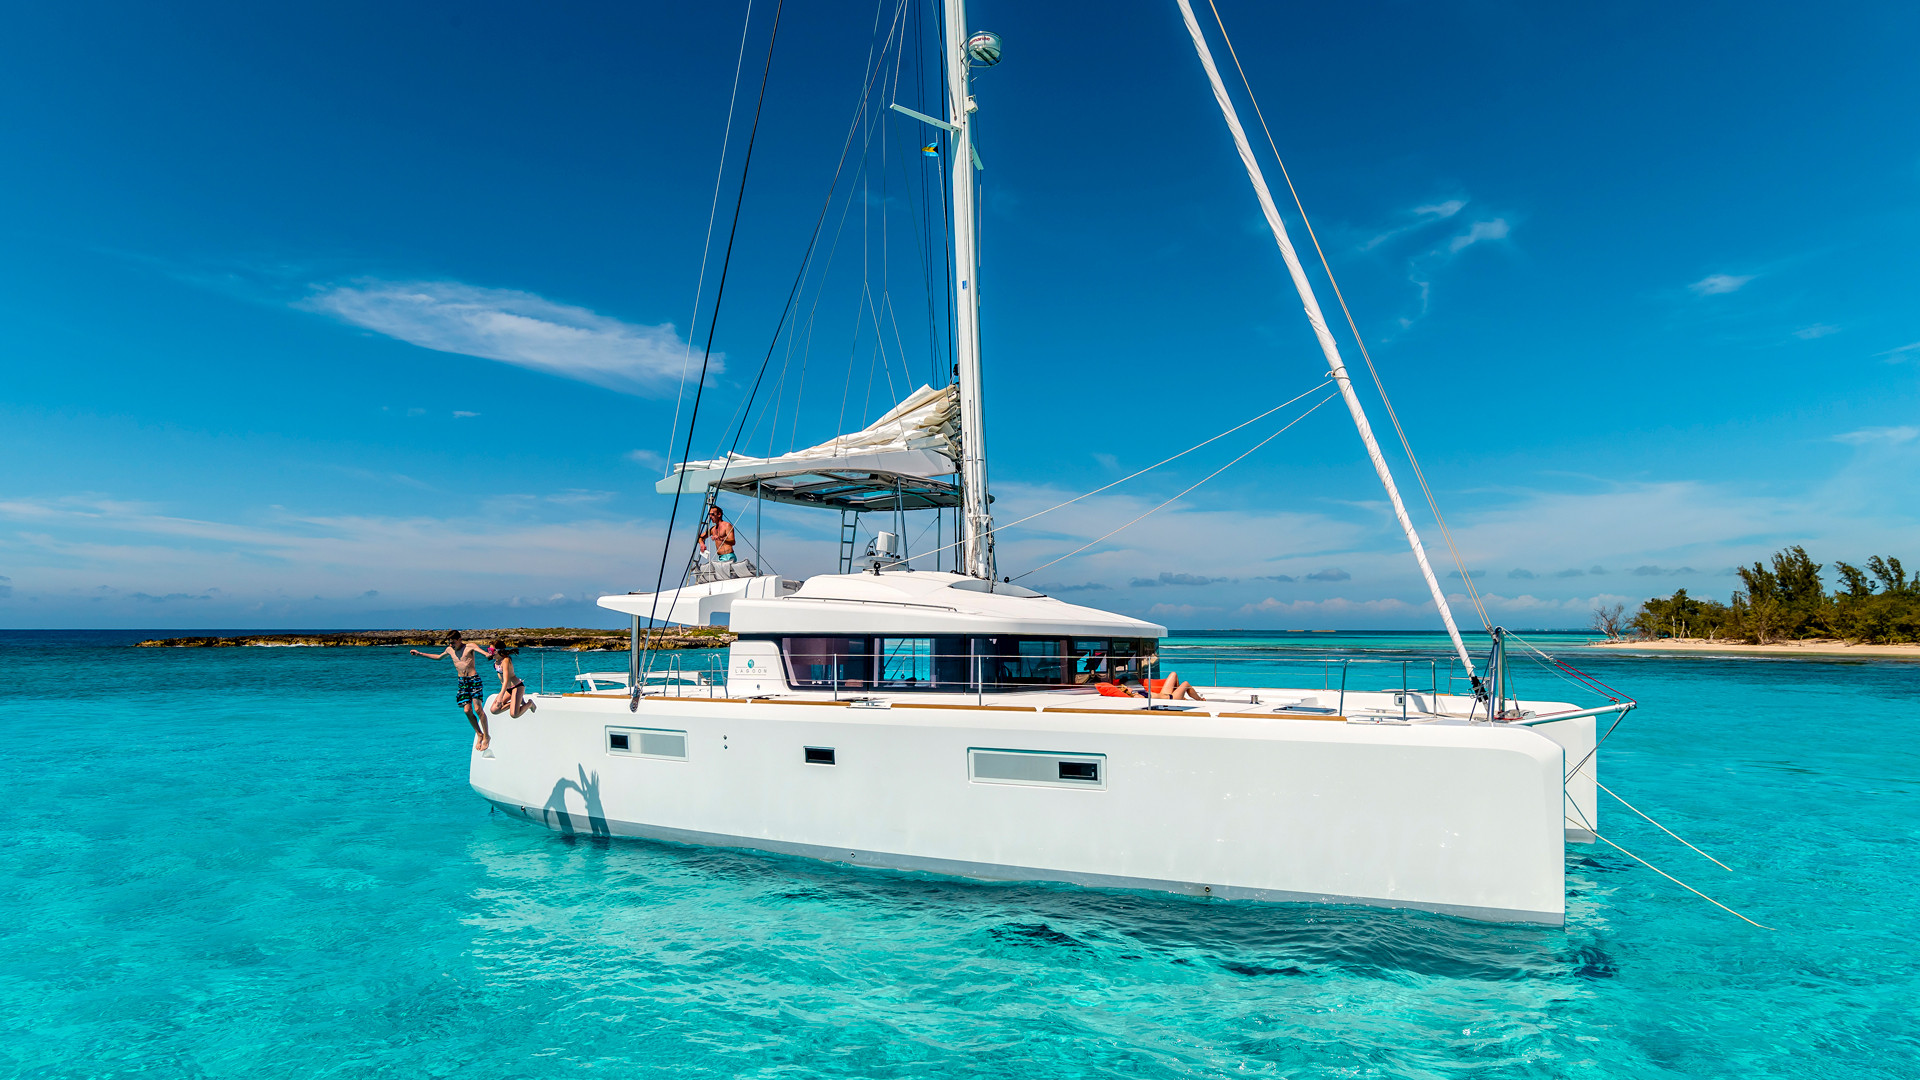 A yacht in St Vincent & the Grenadines